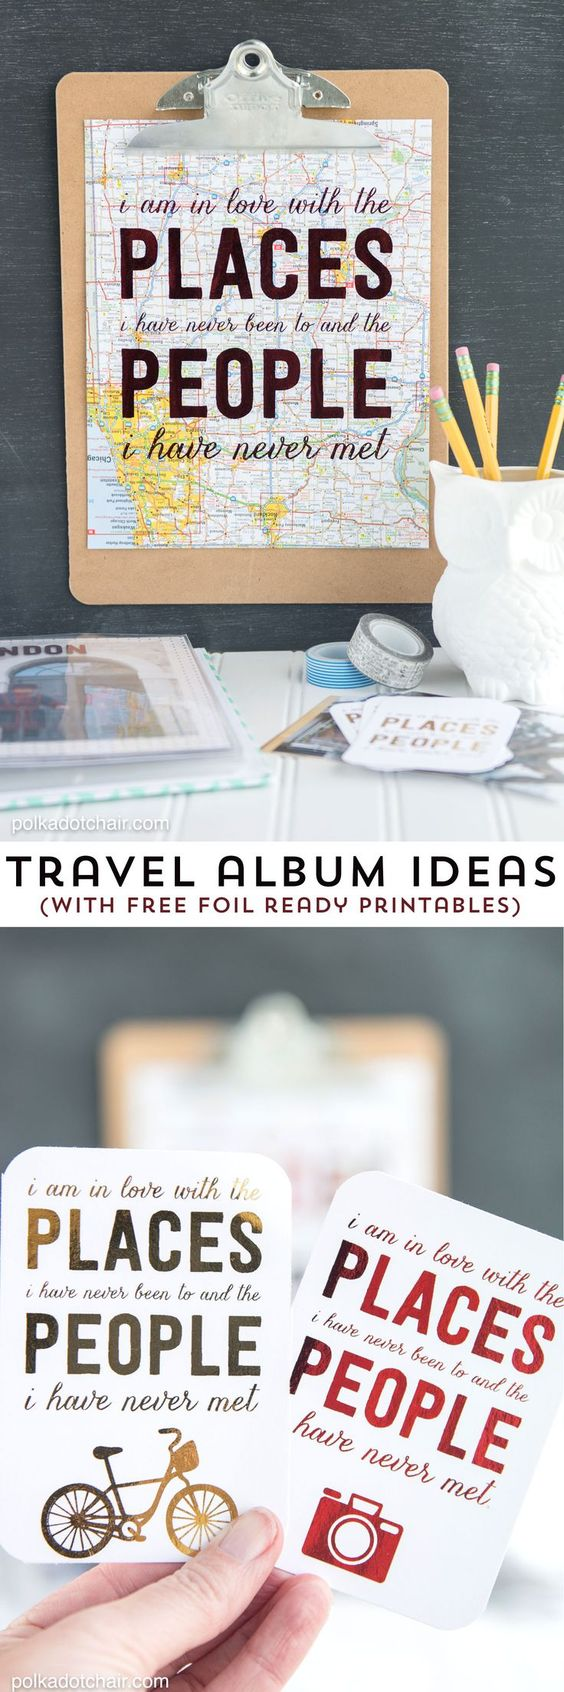 Scrapbook ideas download free - Download Free Printable Travel Themed Quotes That Can Be Used With Minc Foil Applicator Machine Along With Great Travel Scrapbooking Ideas